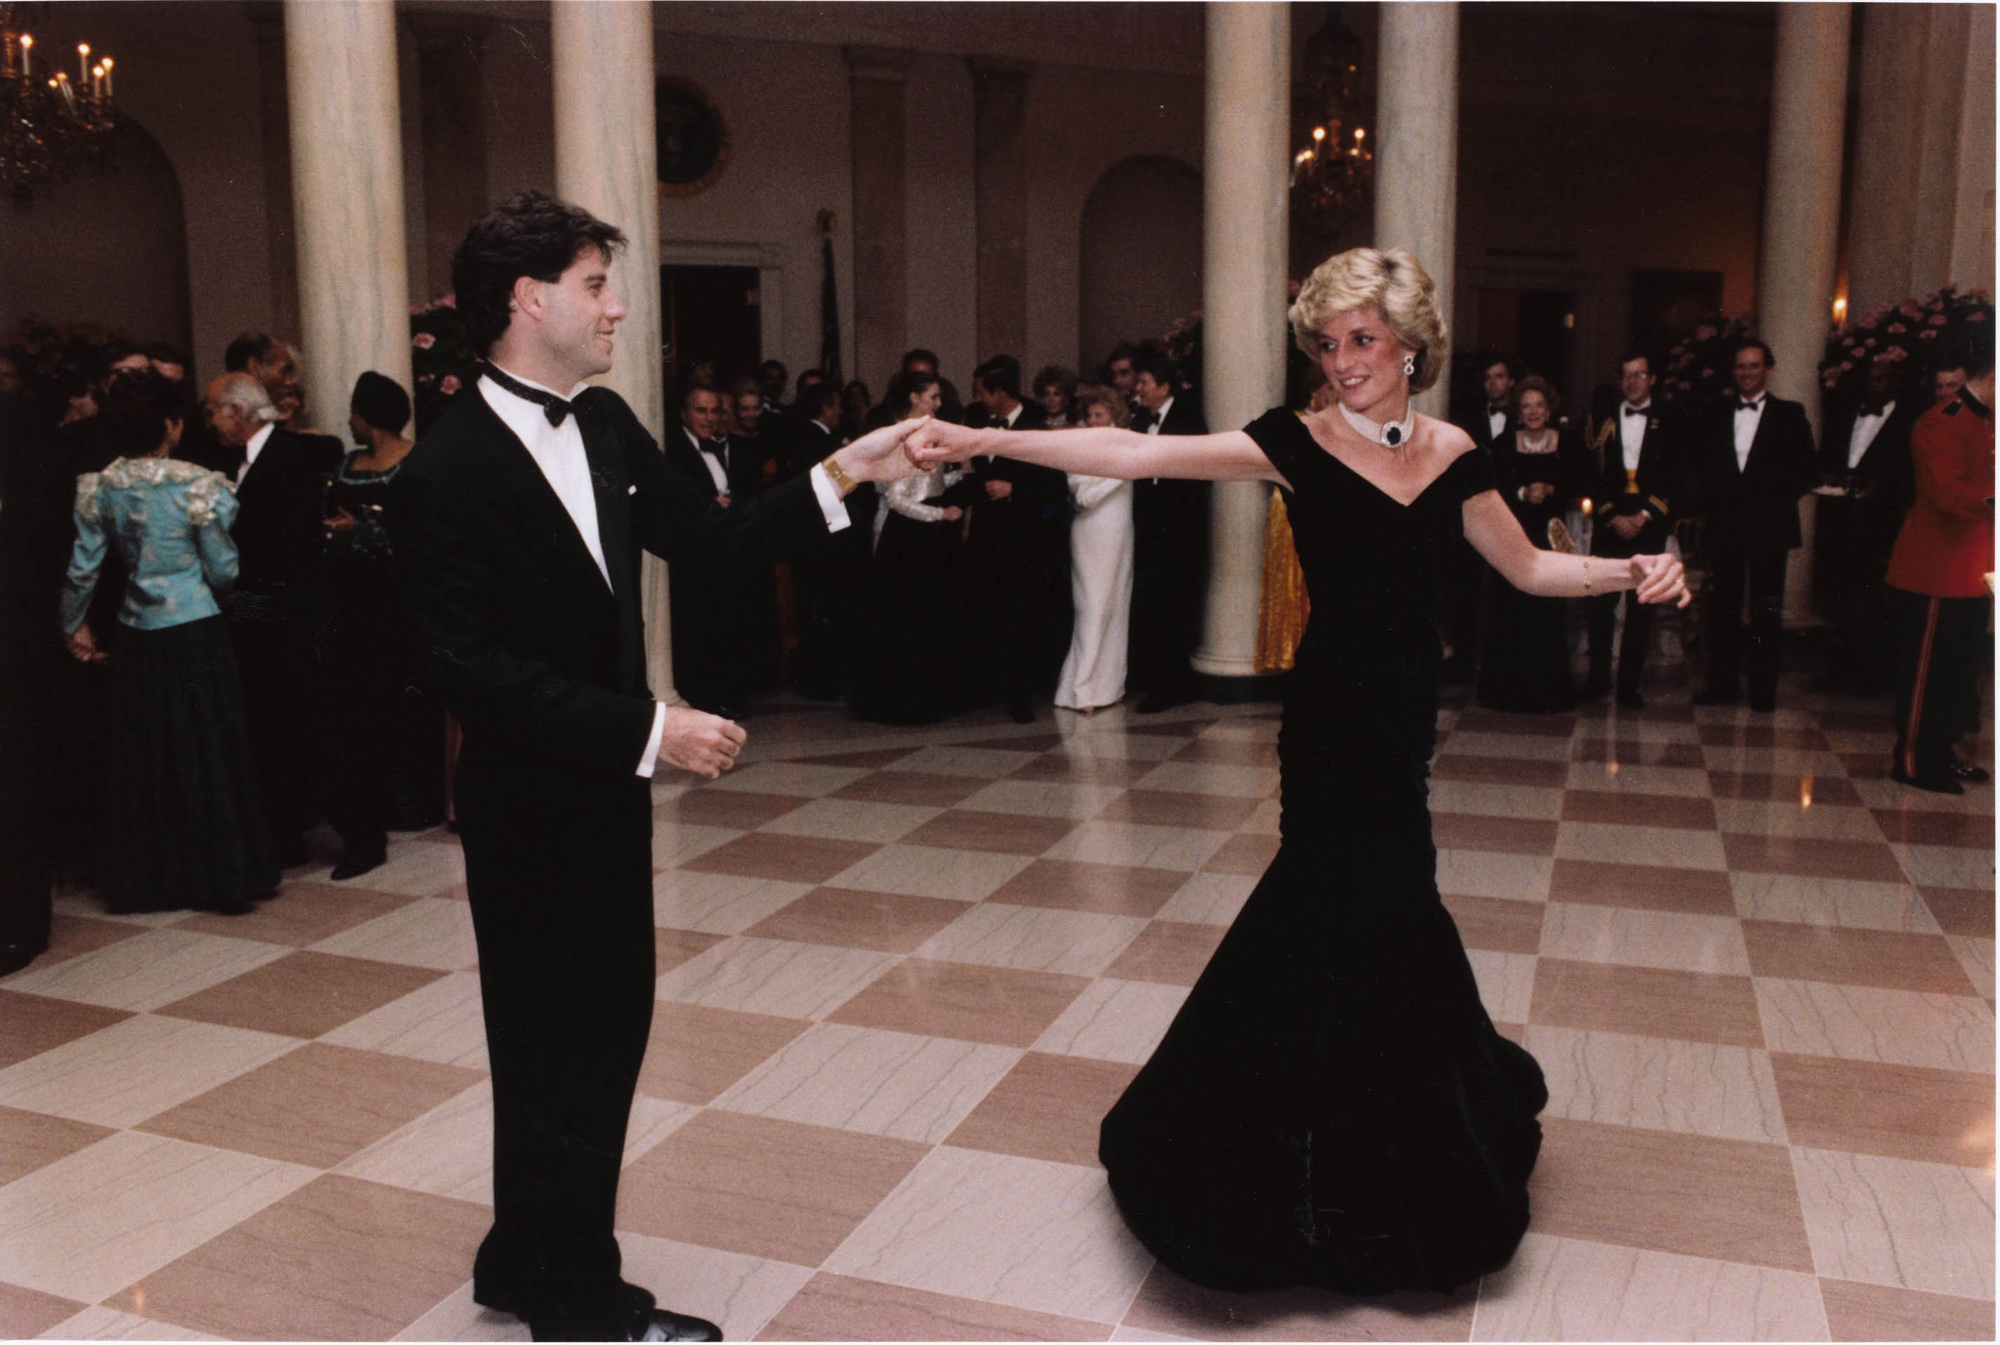 Actor John Travolta dances with Princess Diana at a White House dinner in 1995.